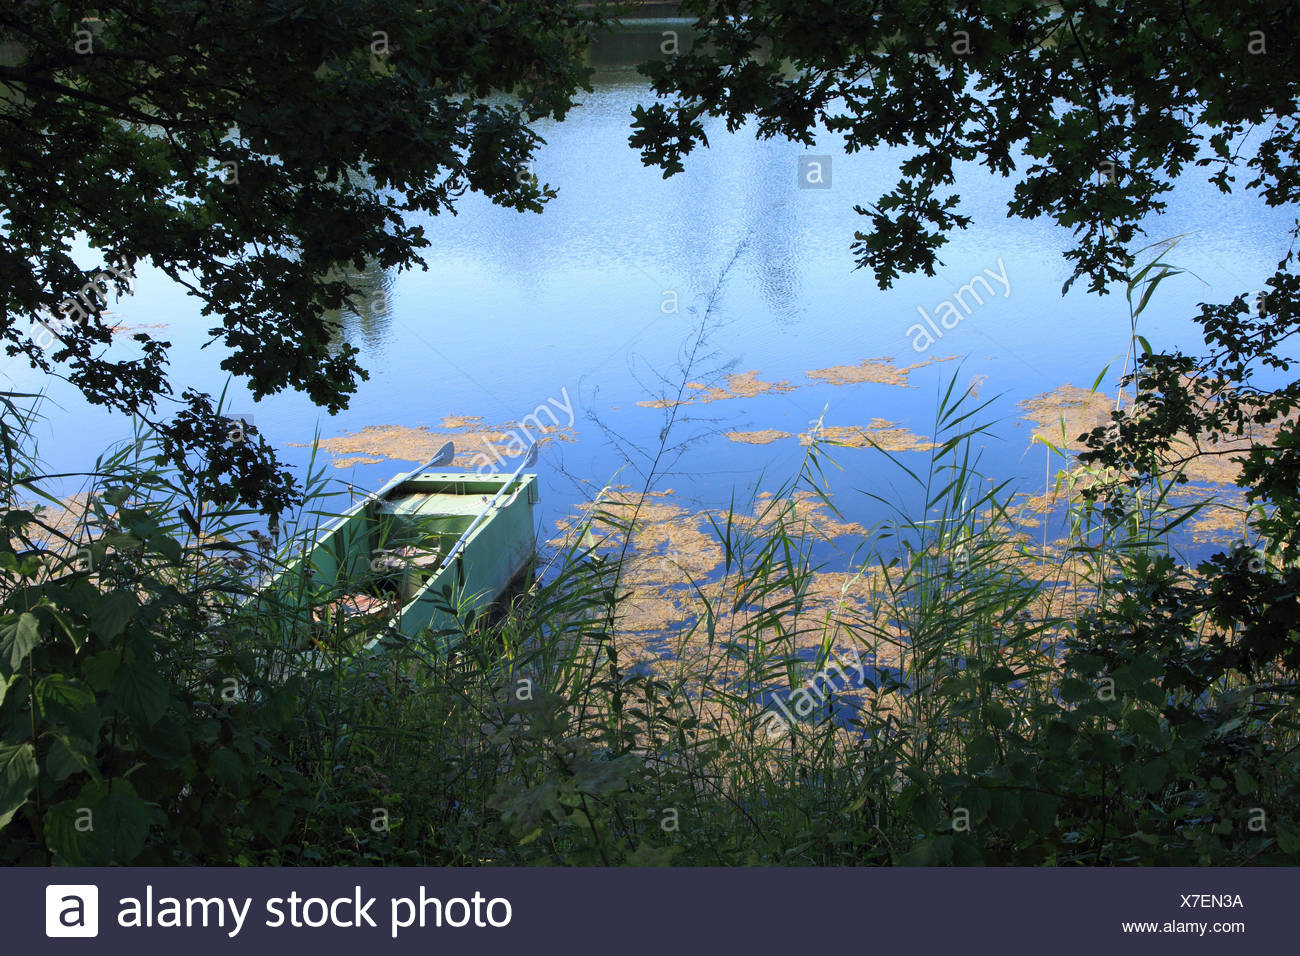 floodplain landscape in sommer with rowing boat, Germany - Stock Image